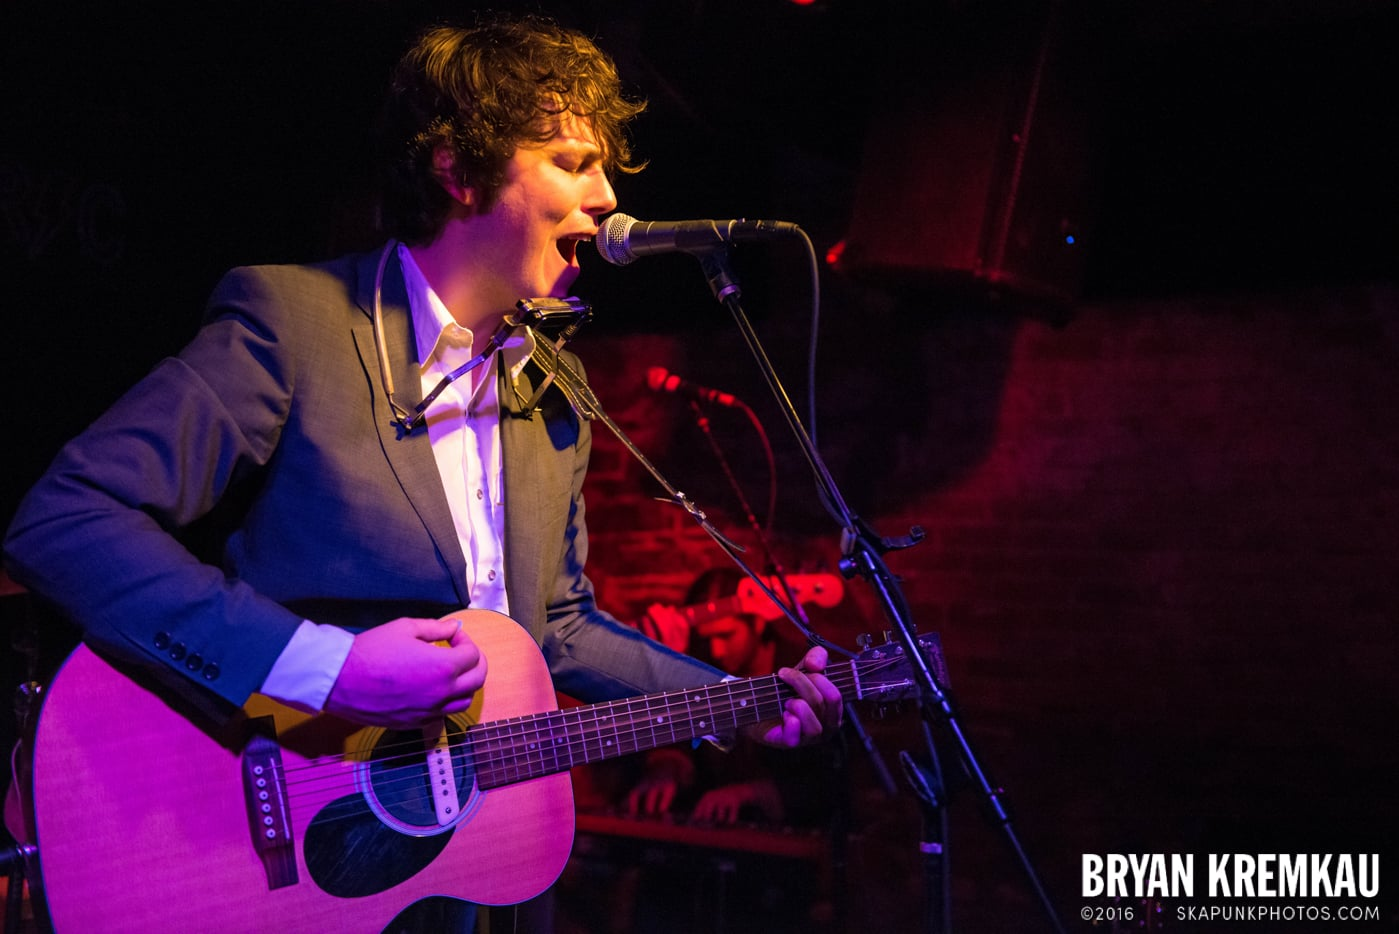 Trapper Schoepp & The Shades @ Bowery Electric, NYC - 11.20.14 (32)